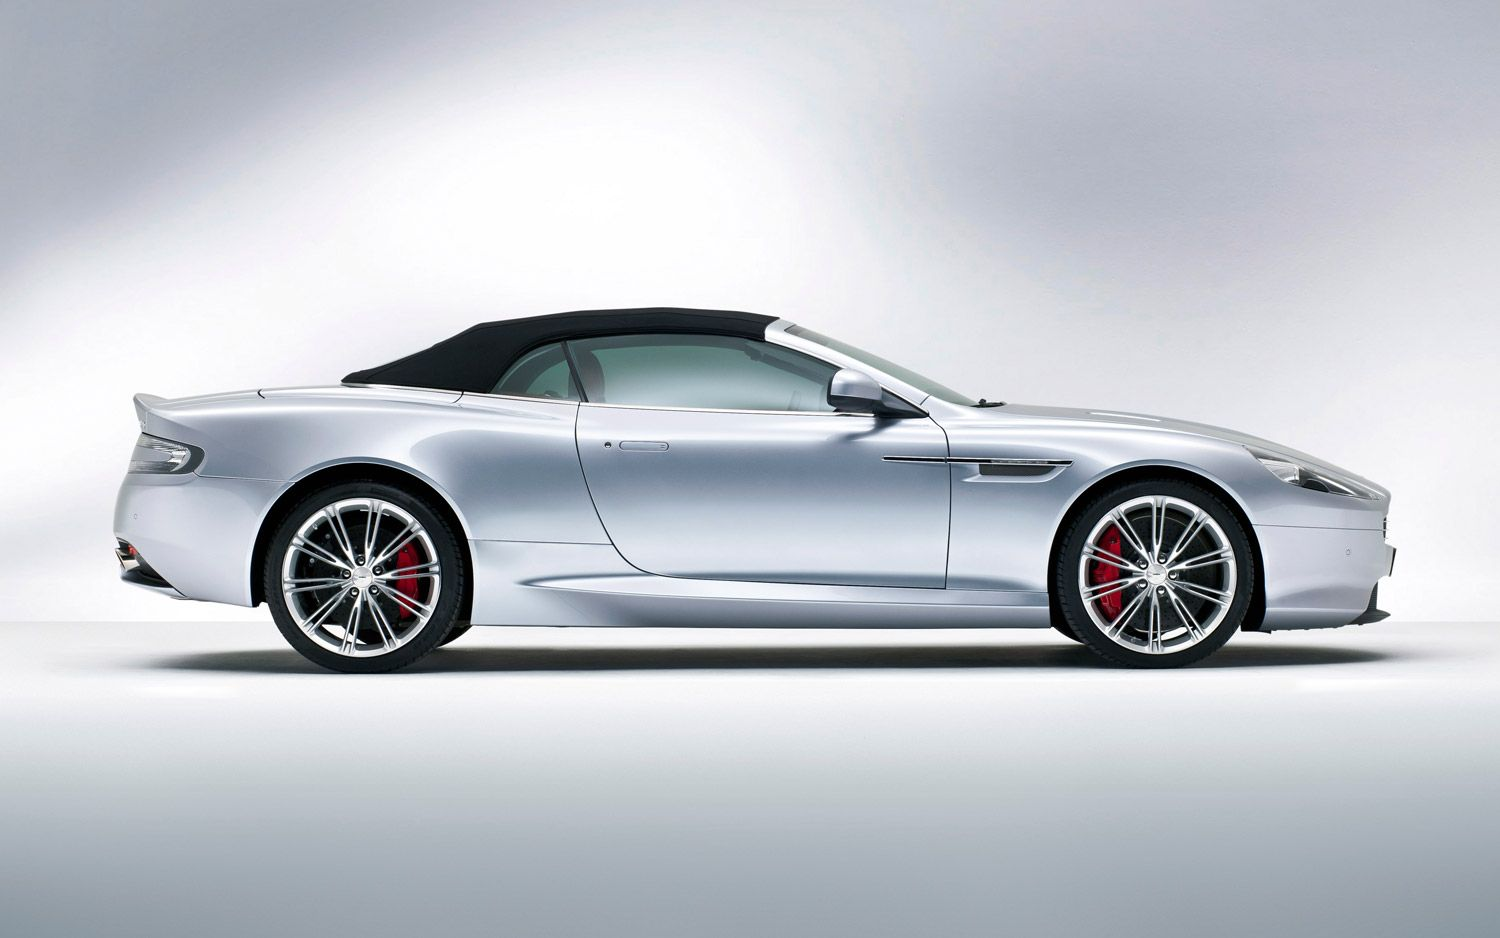 Pin By The Best Hunger Games Fan Oh Ya On Things I Love Pinterest - Aston martin db9 volante price